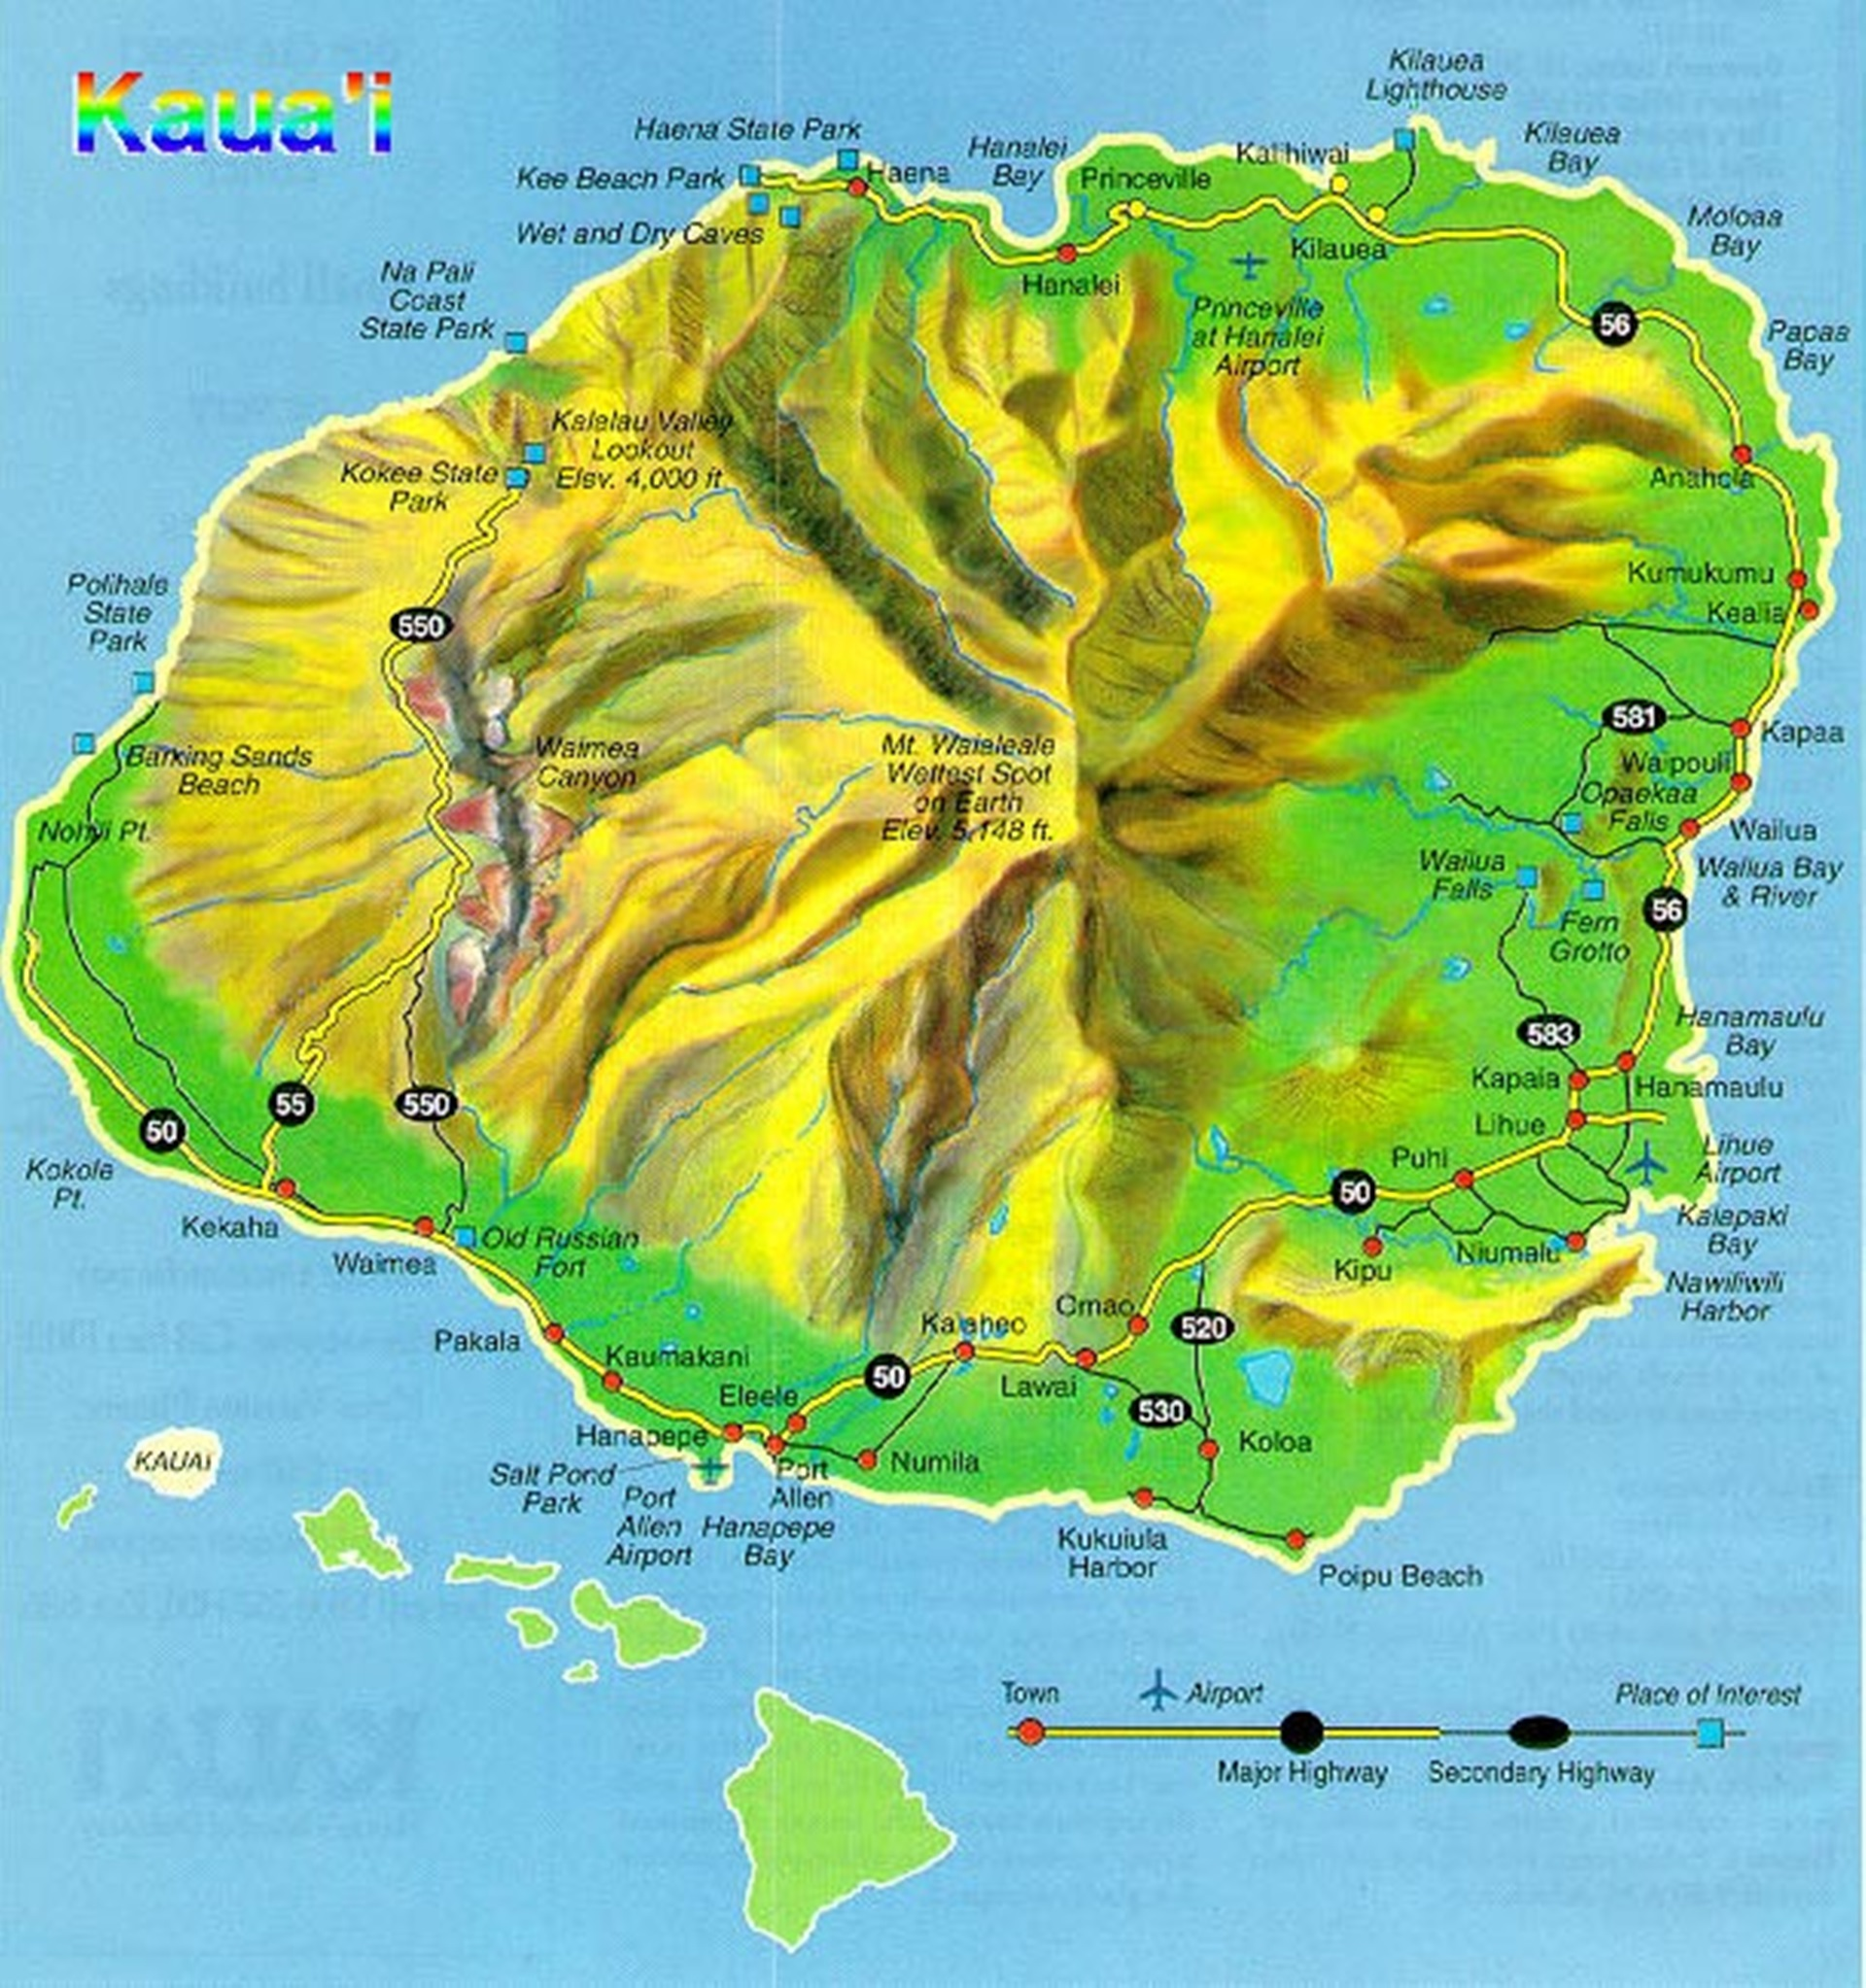 Map of Kauai, Poipu is at the bottom of the map